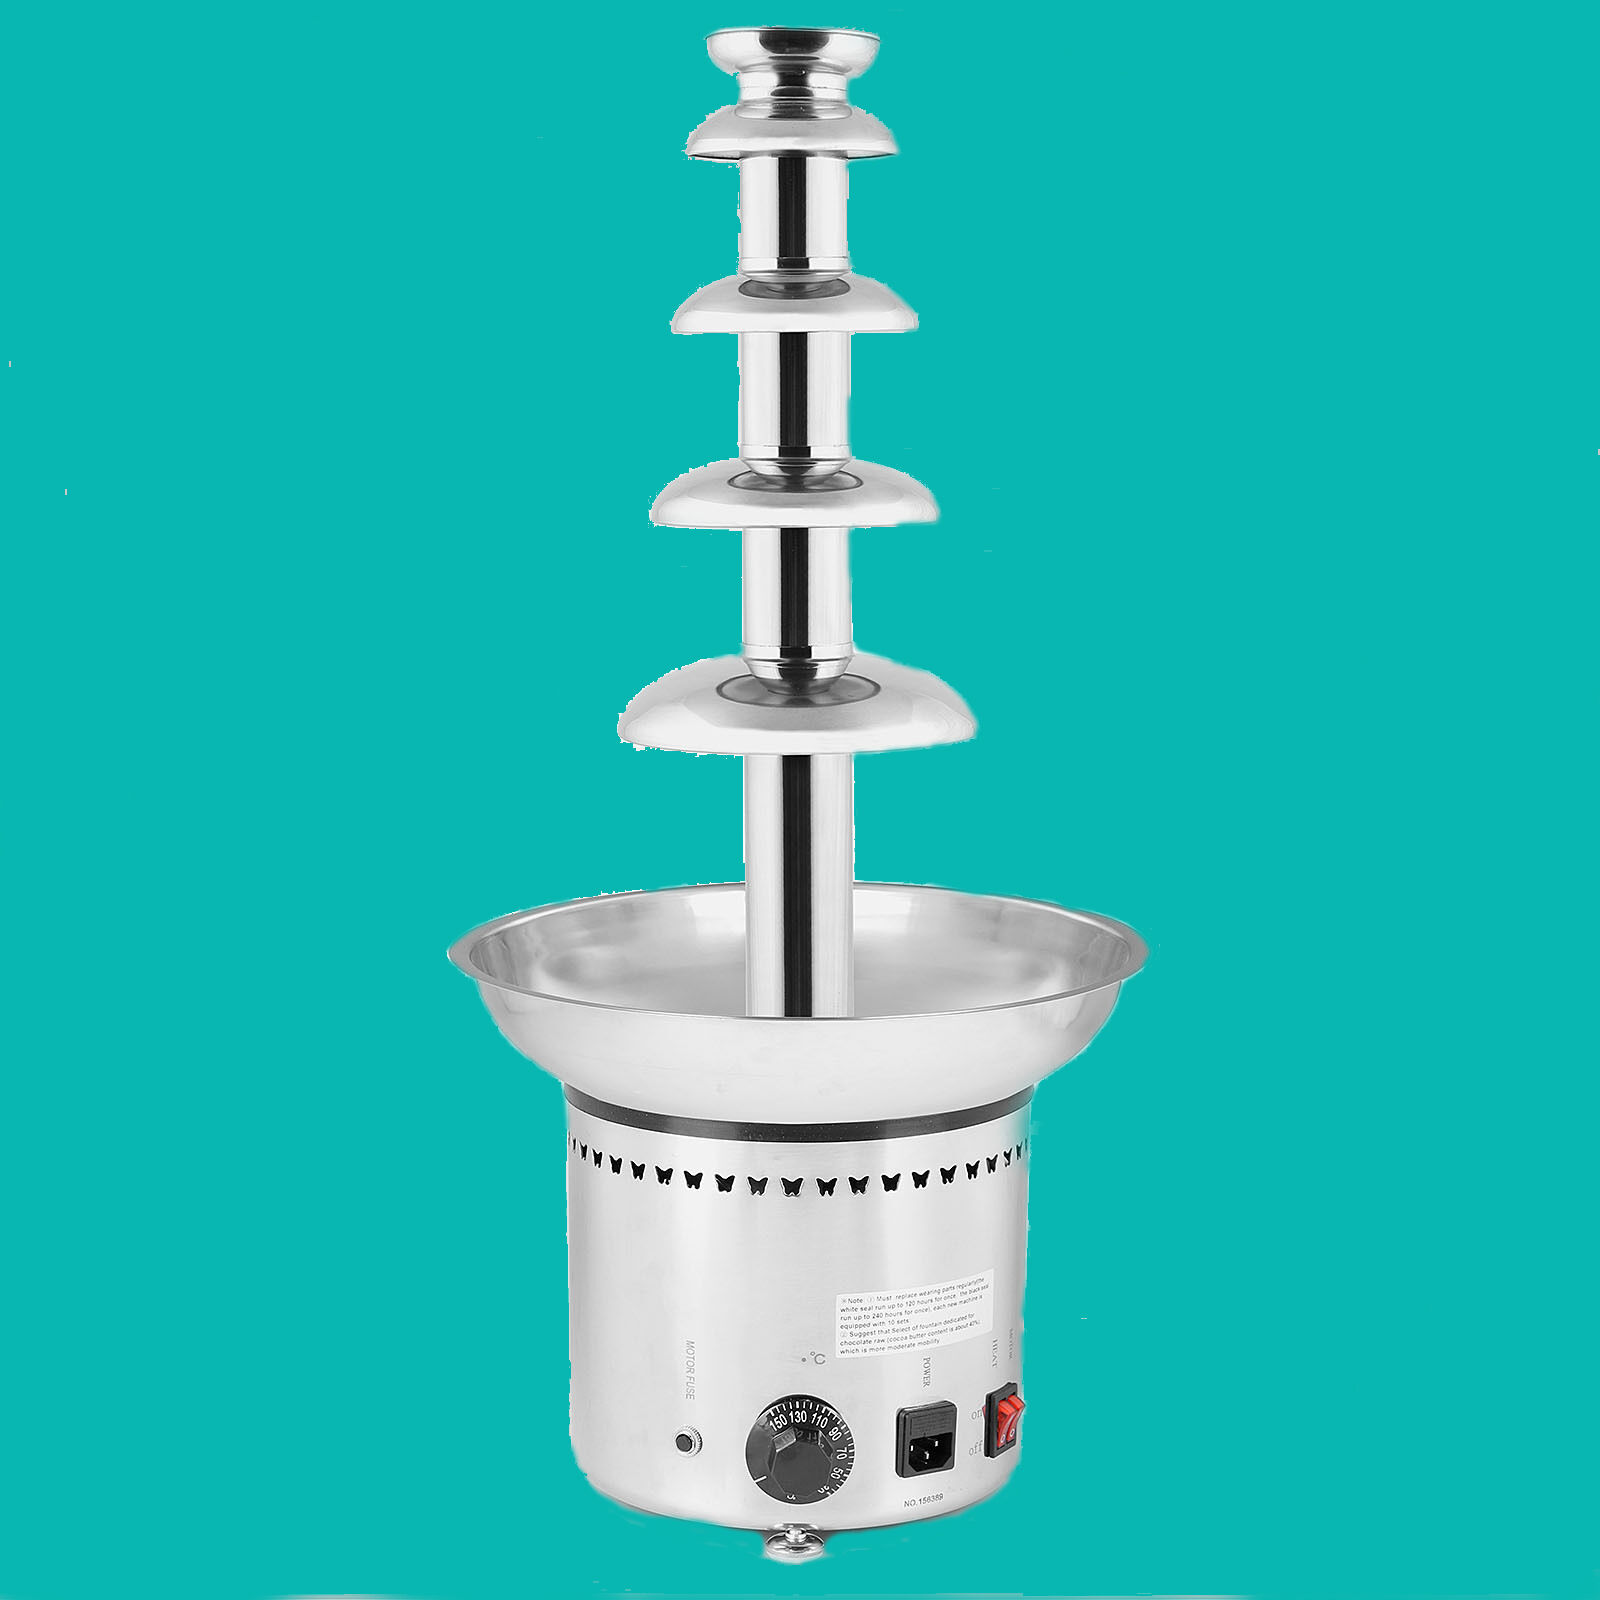 Commercial Chocolate Fountain - Large 5 Tiers - - - UK Warranty 8c2932